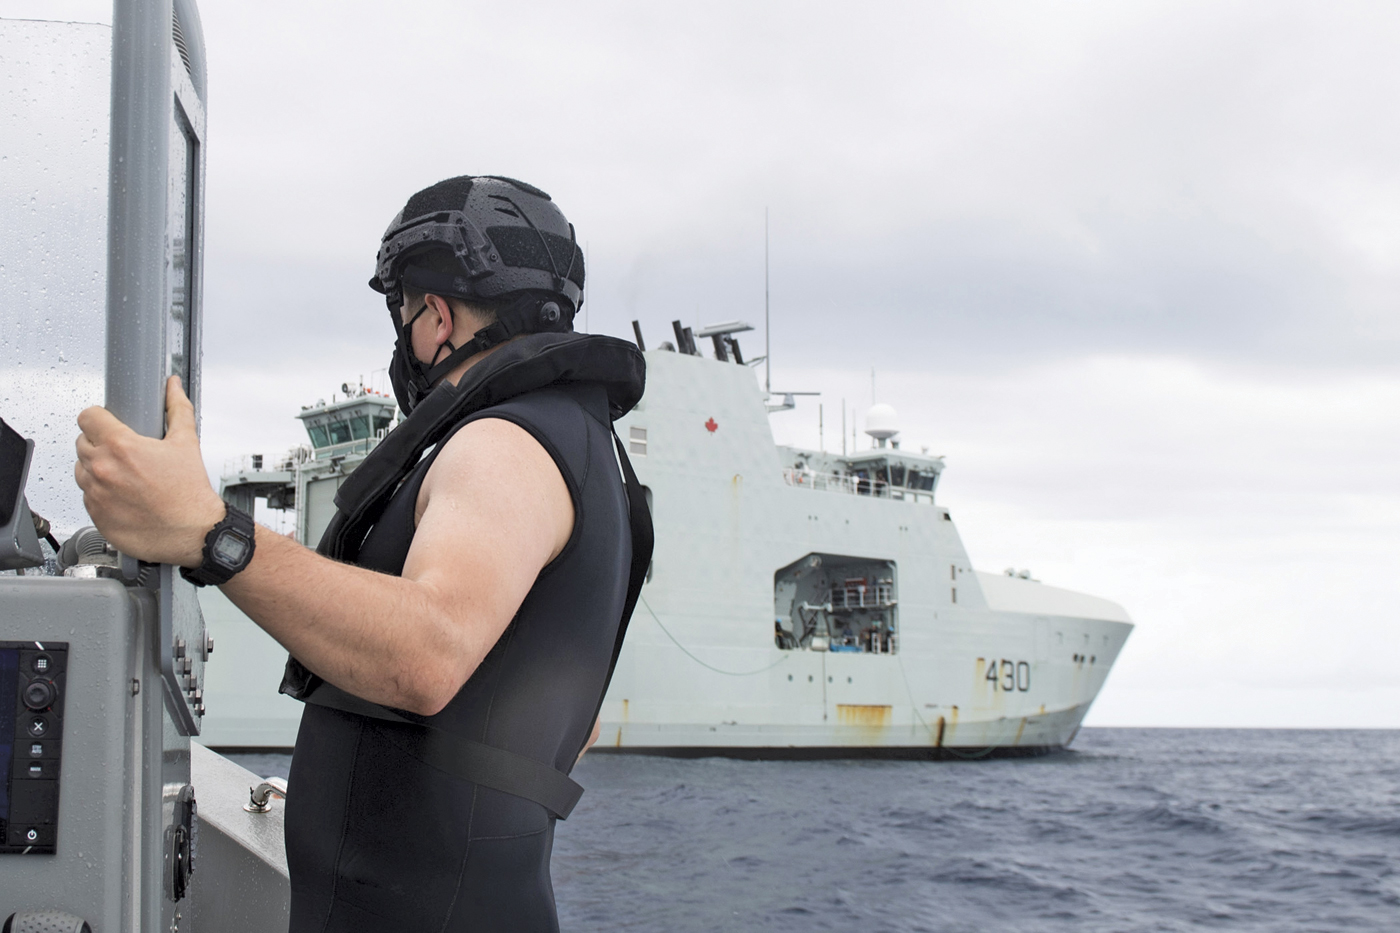 Lt(N) Steven Gallant performs functional tasks on board a rigid-hulled inflatable boat with Harry DeWolf in the background during warm water trials. Photo by Corporal Simon Arcand, Canadian Armed Forces Photo